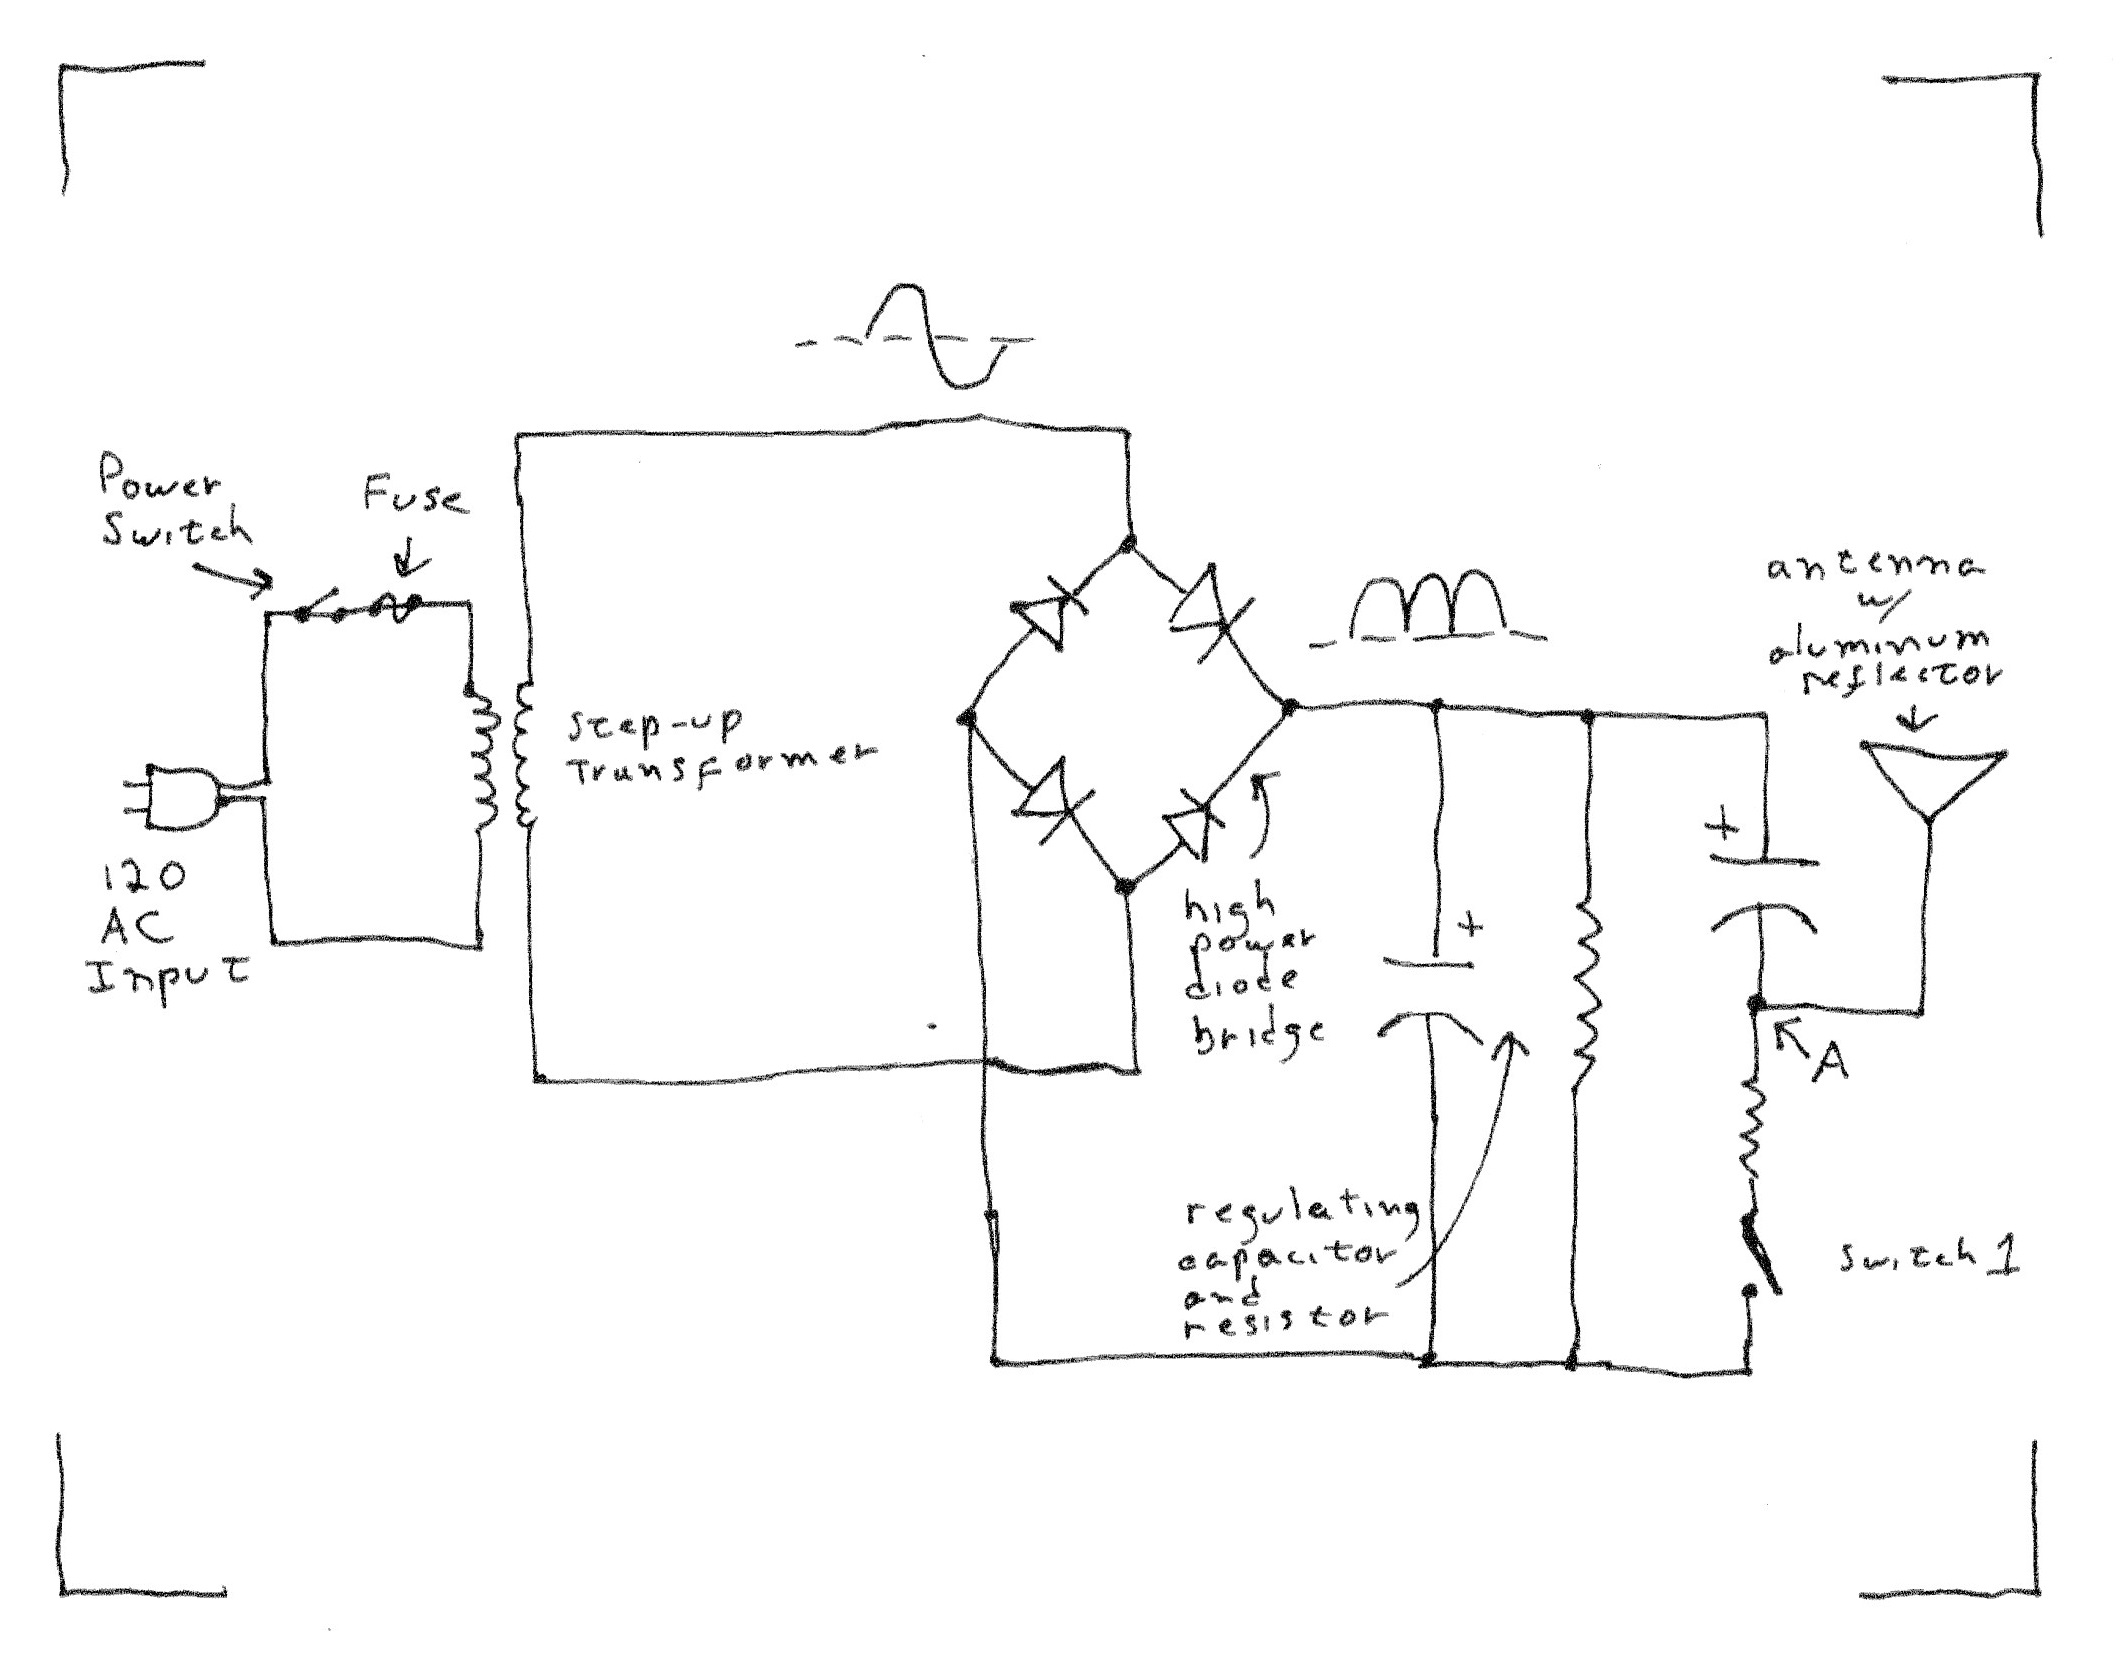 Philip Nute 28 Easy St Weymouth Mass 02190 Has Pulse Delay Suck Close Relay Circuit Controlcircuit Problems The Schematic Is Over Simplified I Am Just Trying To Pass On An Idea A Massive Surge Of Current Would Probably Draw Down Dc Voltage And